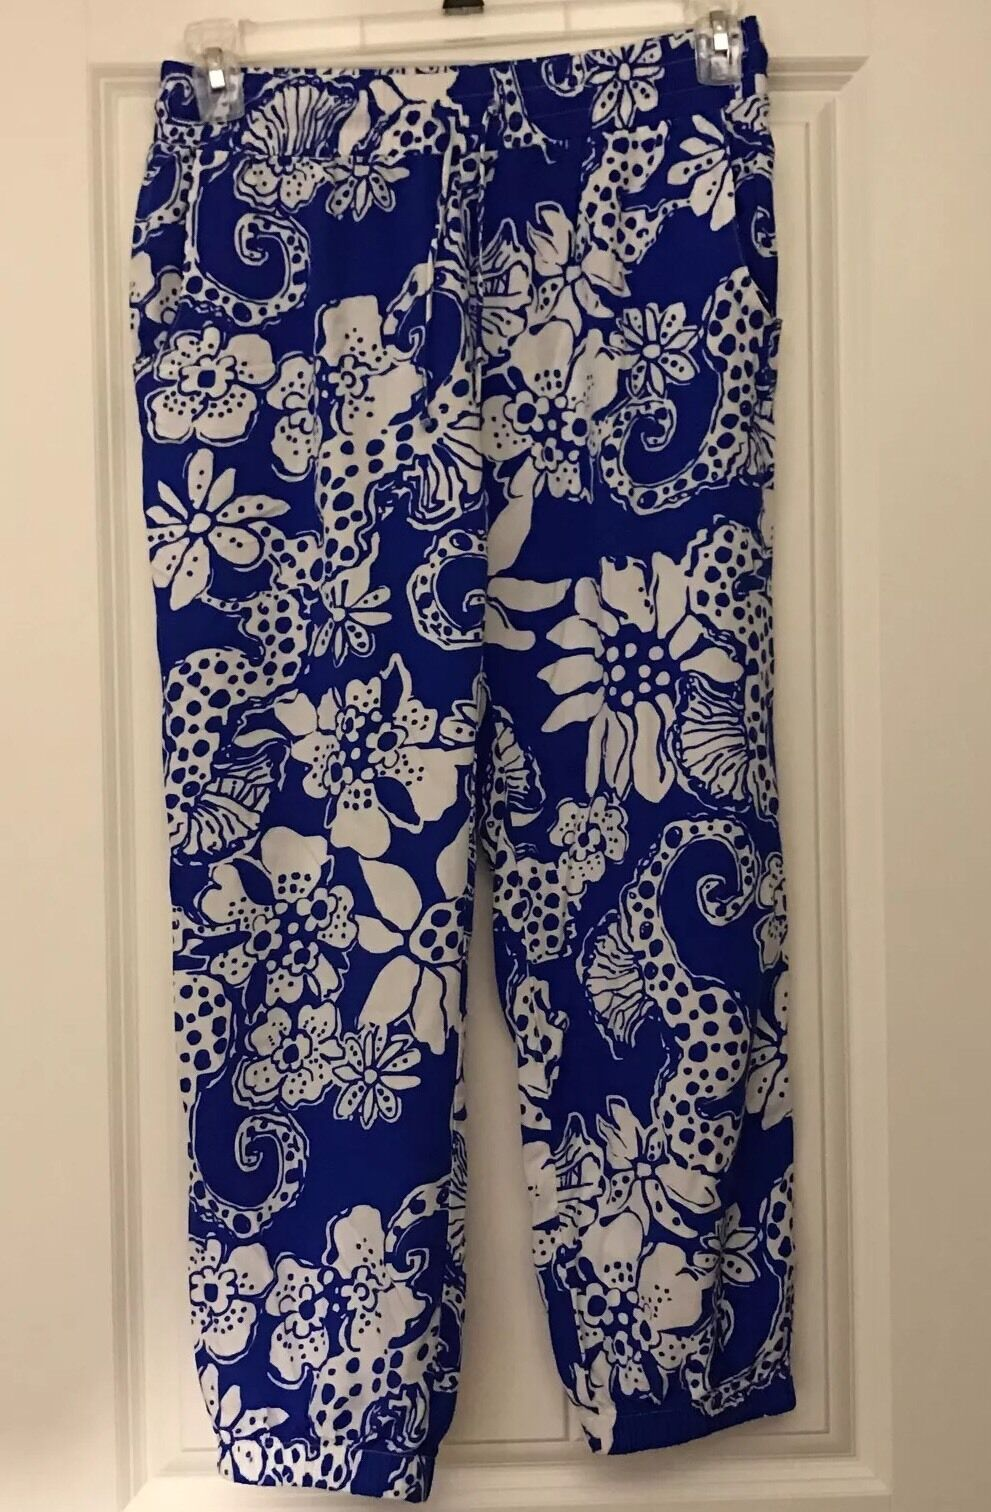 Lilly Pulitzer Quahog Chowdah Cambridge Palazzo Pants Seahorses Floral bluee S